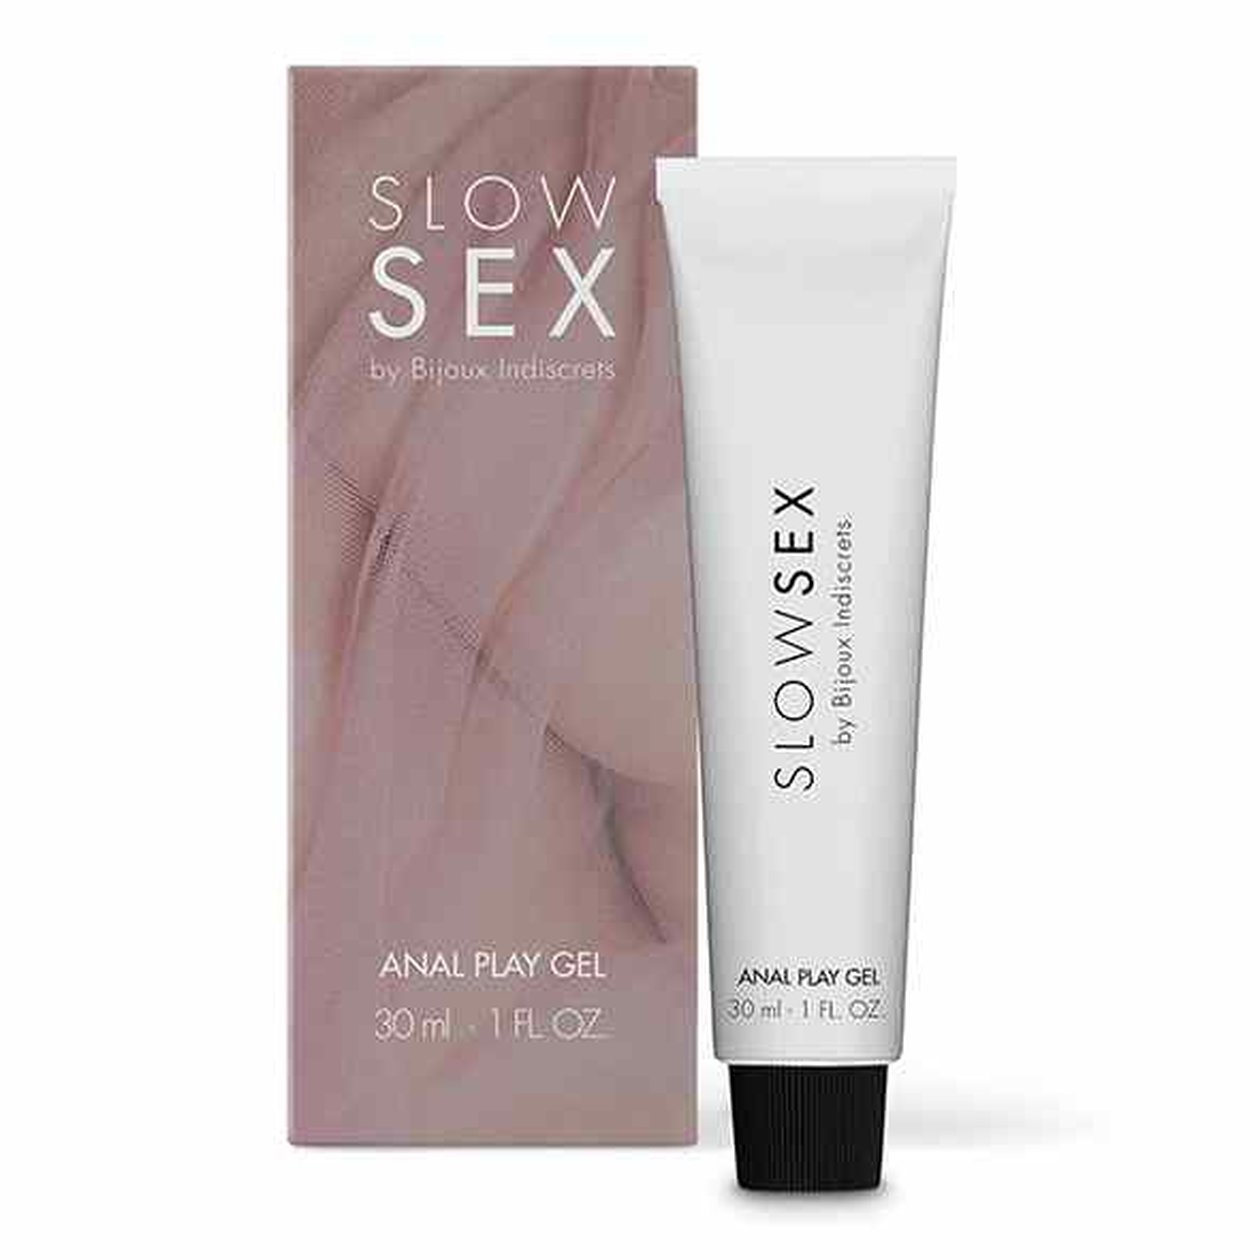 Bijoux Indiscrets - Slow Sex Anal Play Gel